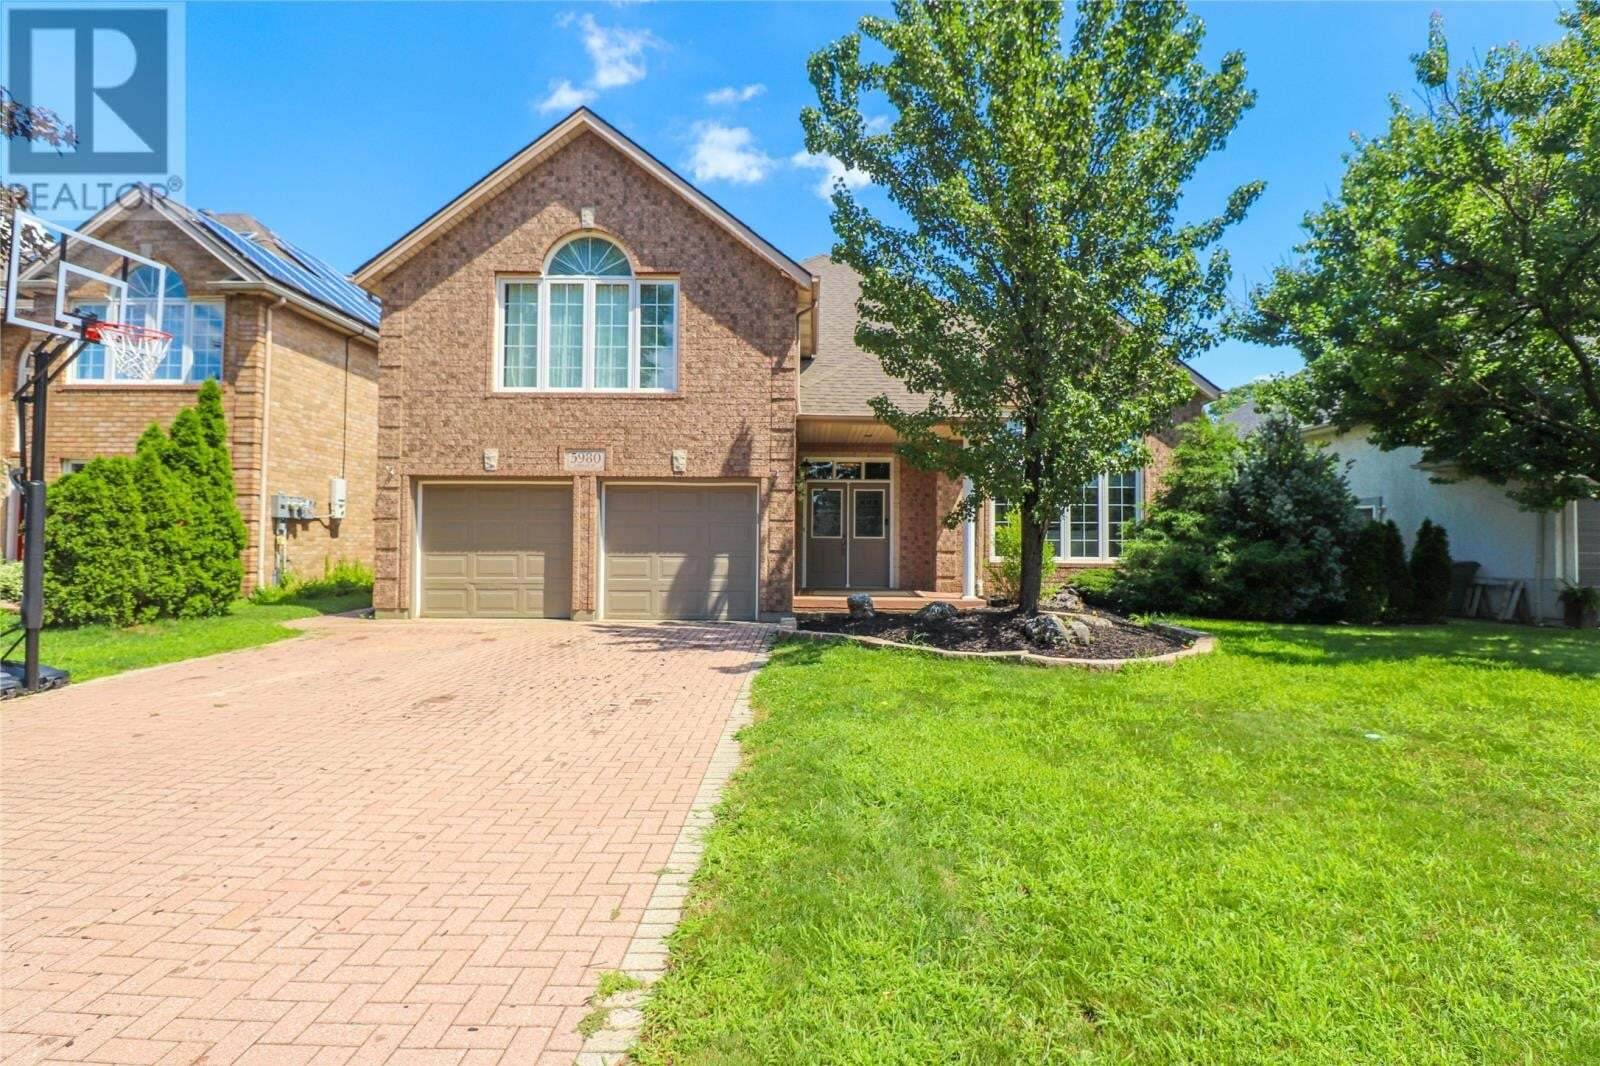 House for sale at 5980 Lasalle  Lasalle Ontario - MLS: 20009593